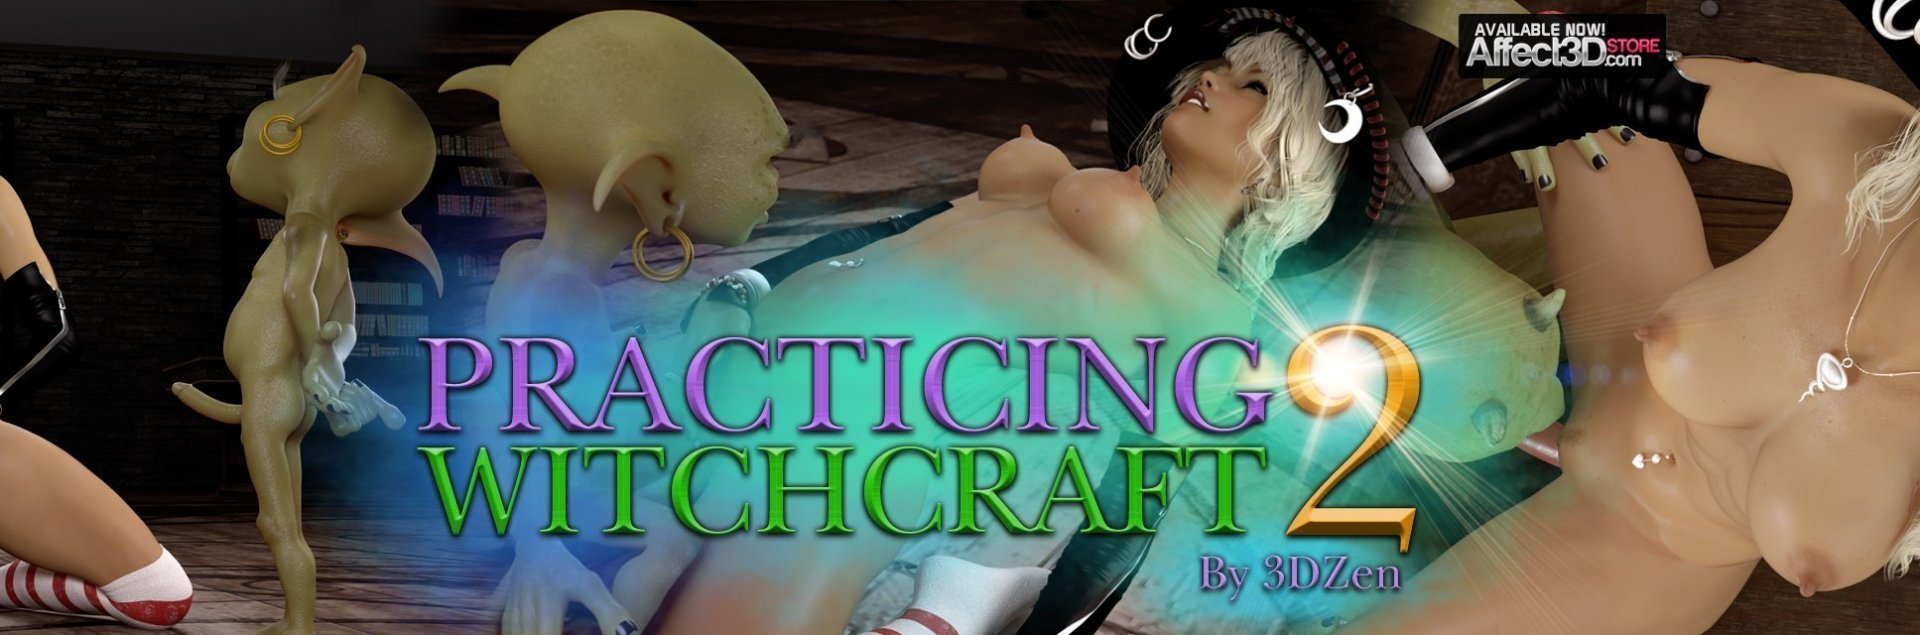 Practicing Witchcraft 2 by 3DZen